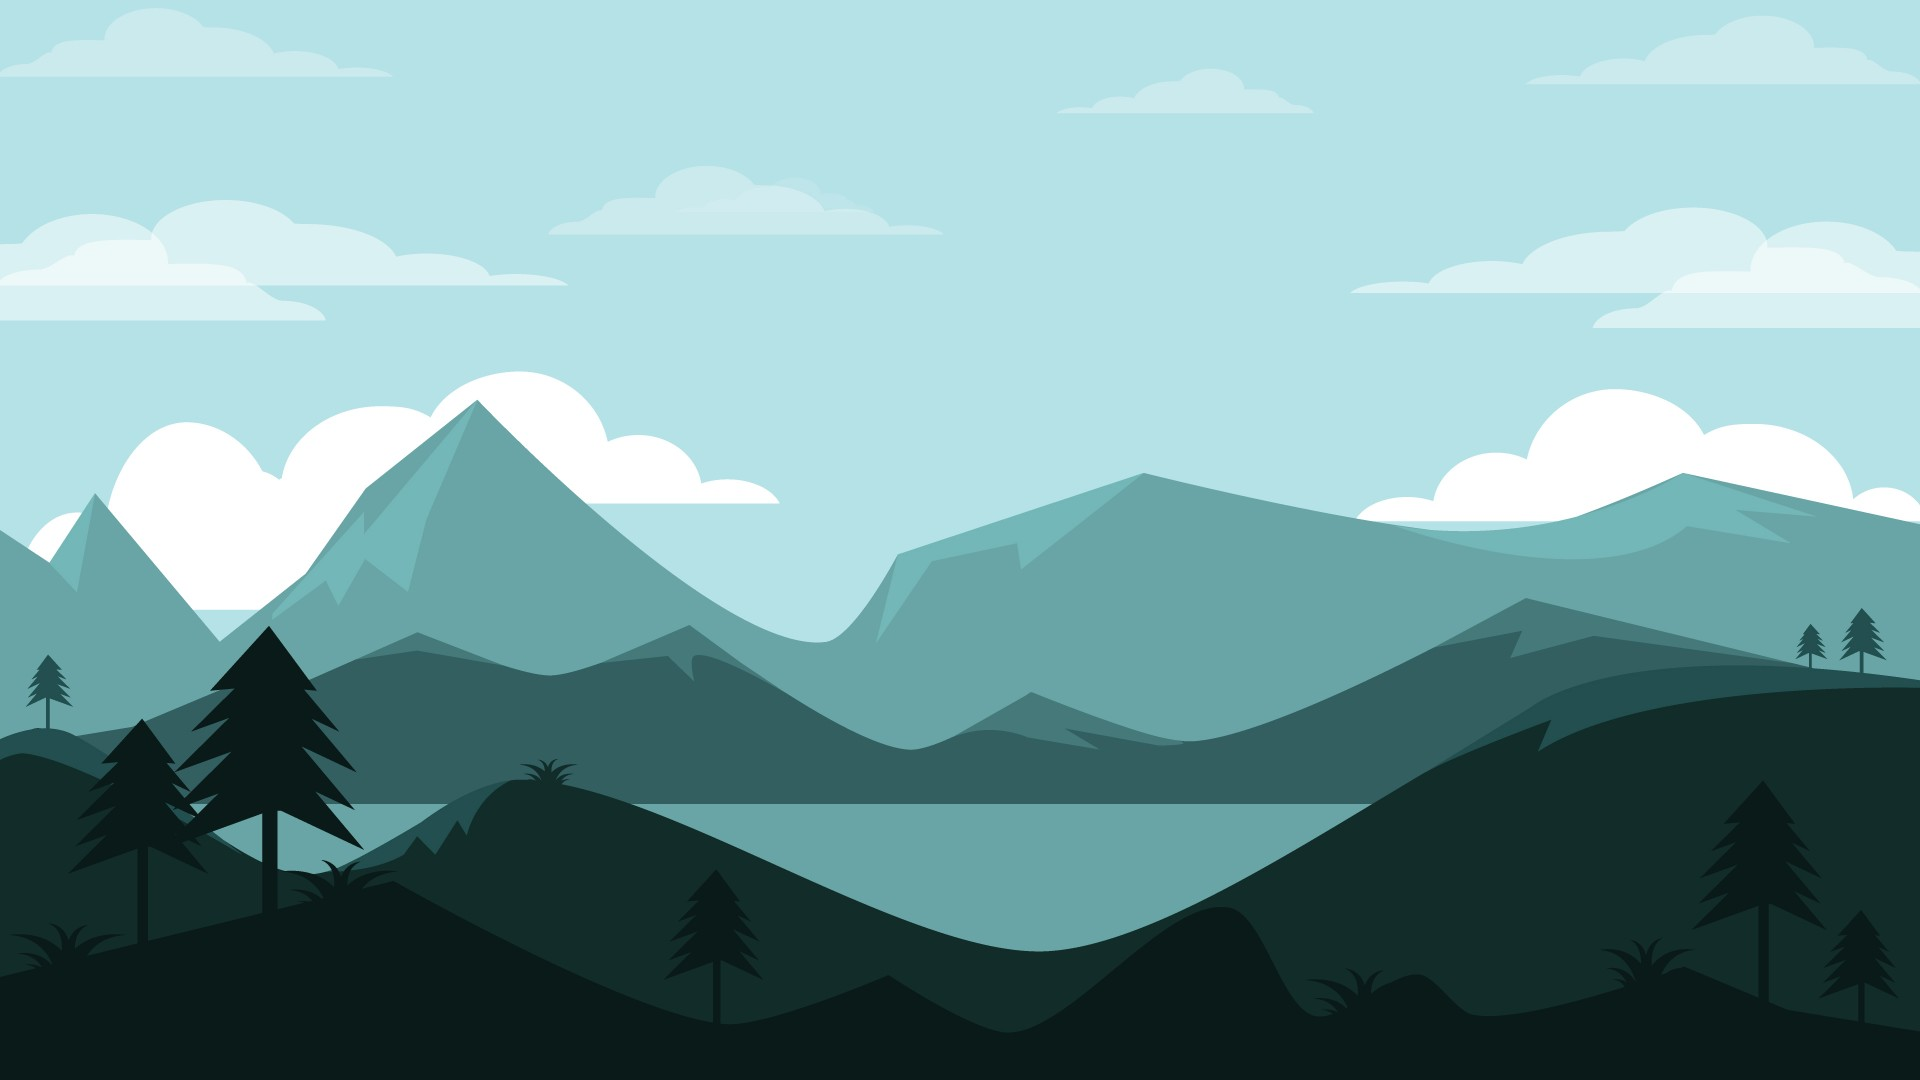 Carbon Wallpaper Iphone X Mountains Landscape Minimal 4k Wallpapers Hd Wallpapers